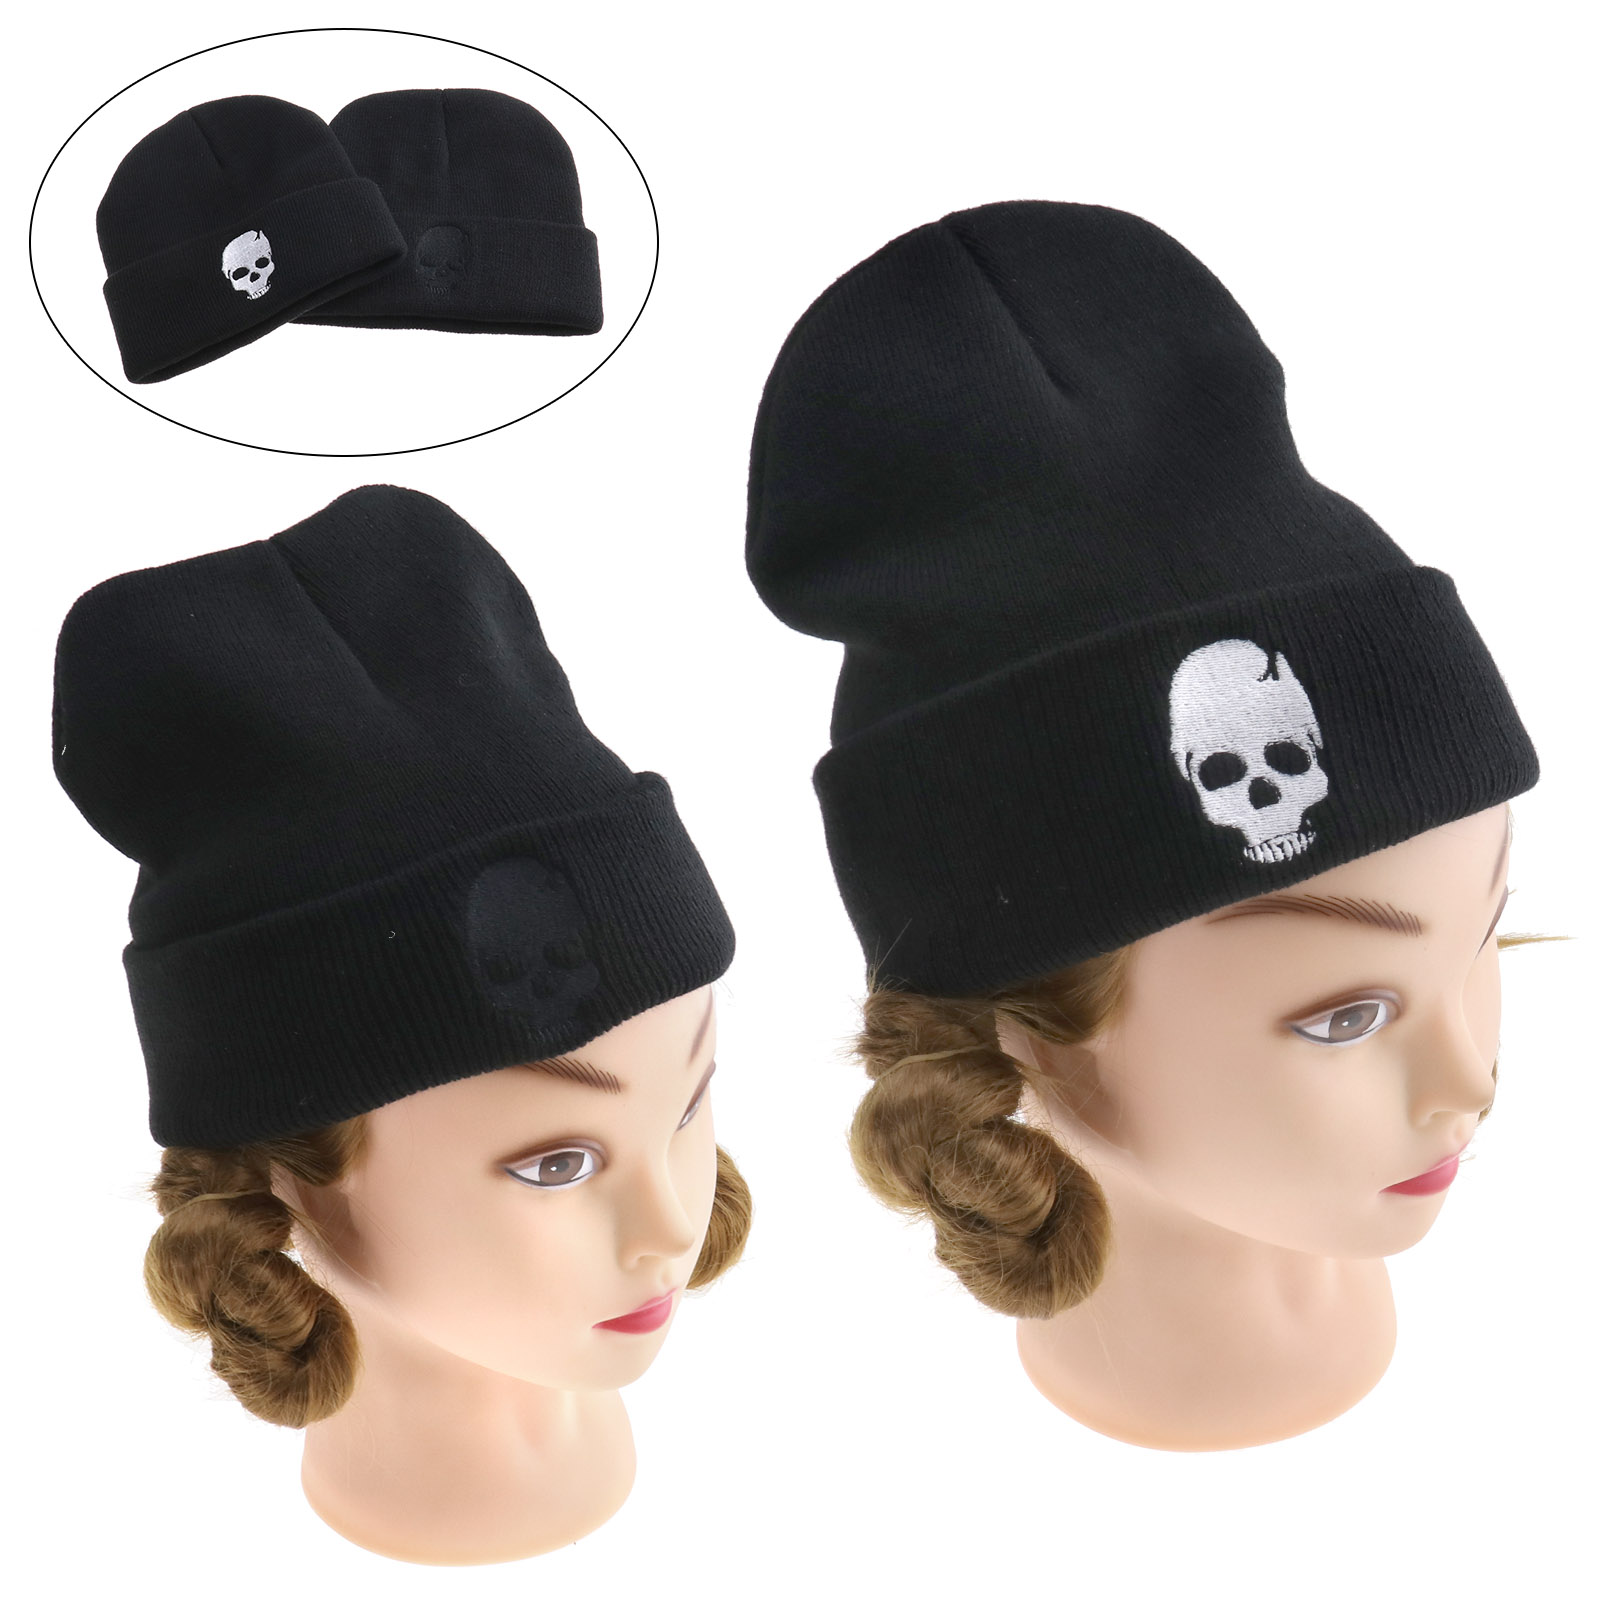 1cf193db7db Skull Knitted Hip Hop Beanie Hat Winter Warm Ski Cap Women Men Unisex Cool  Gift